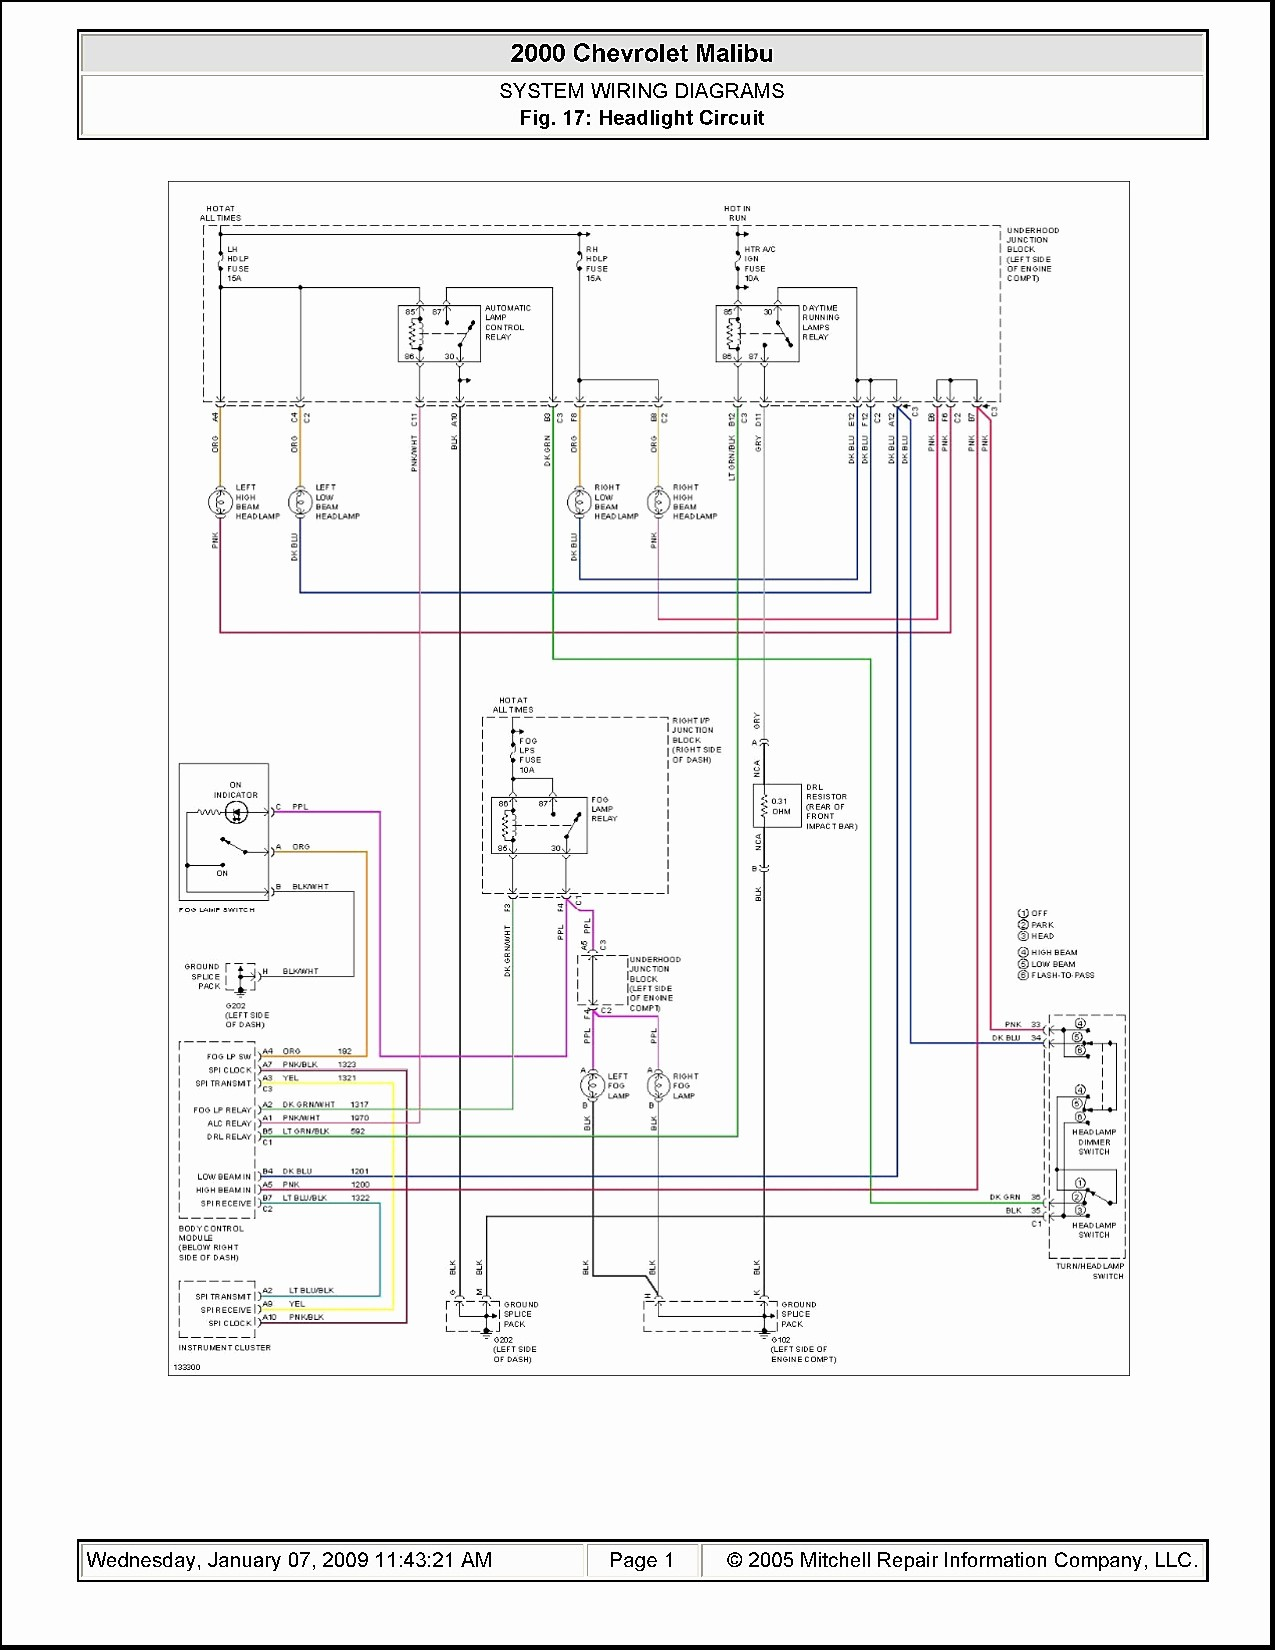 2004 hyundai santa fe window wiring diagram wiring diagram yerwiring diagram hyundai santa fe 2004 wiring diagram official 2004 hyundai santa fe window wiring diagram